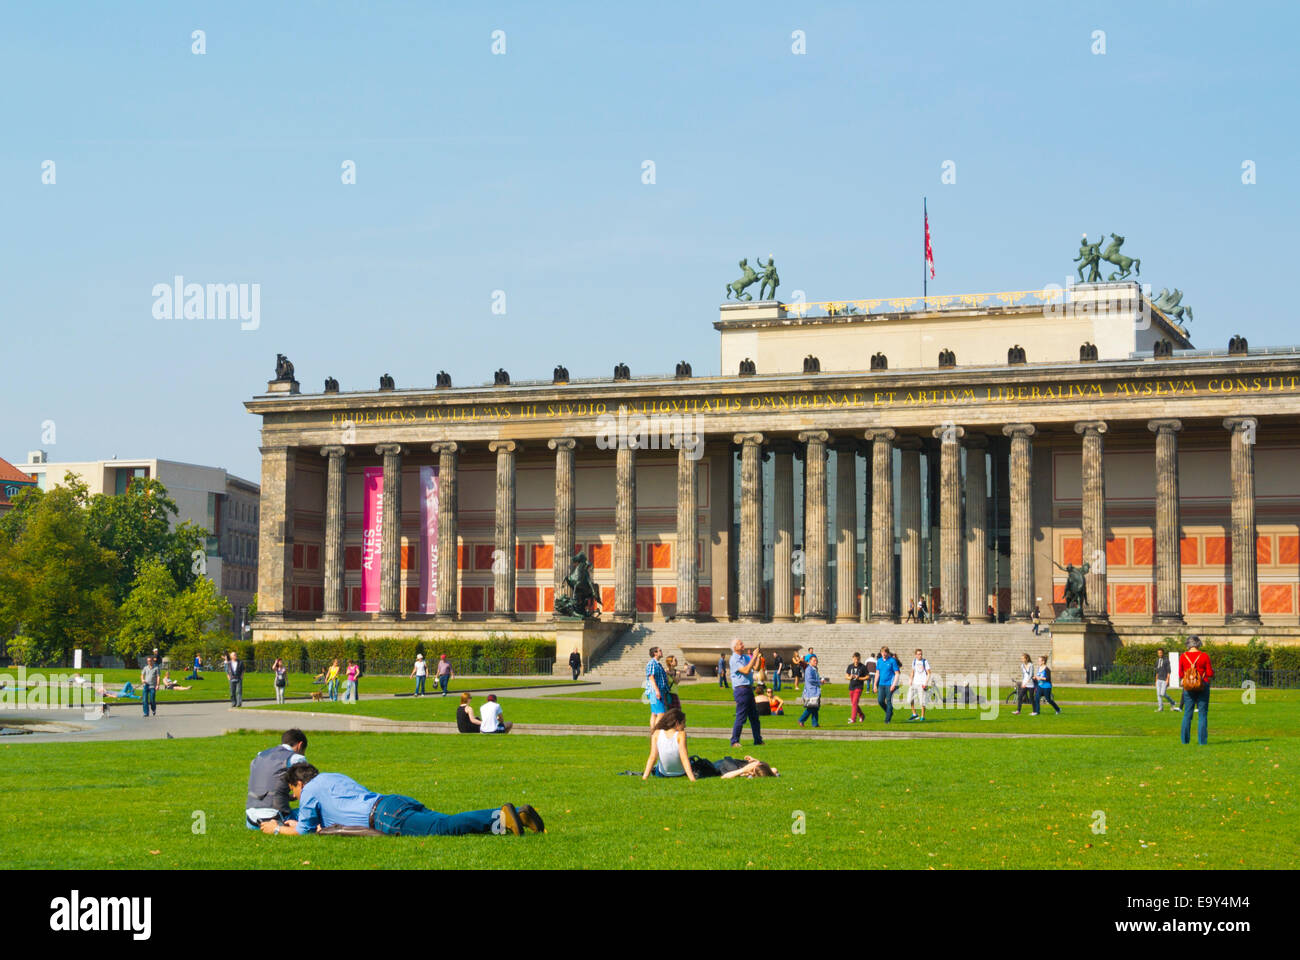 Lustgarten park, in front of Altes Museum, Museumsinsel, the museum island, Mitte district, central Berlin, Germany - Stock Image